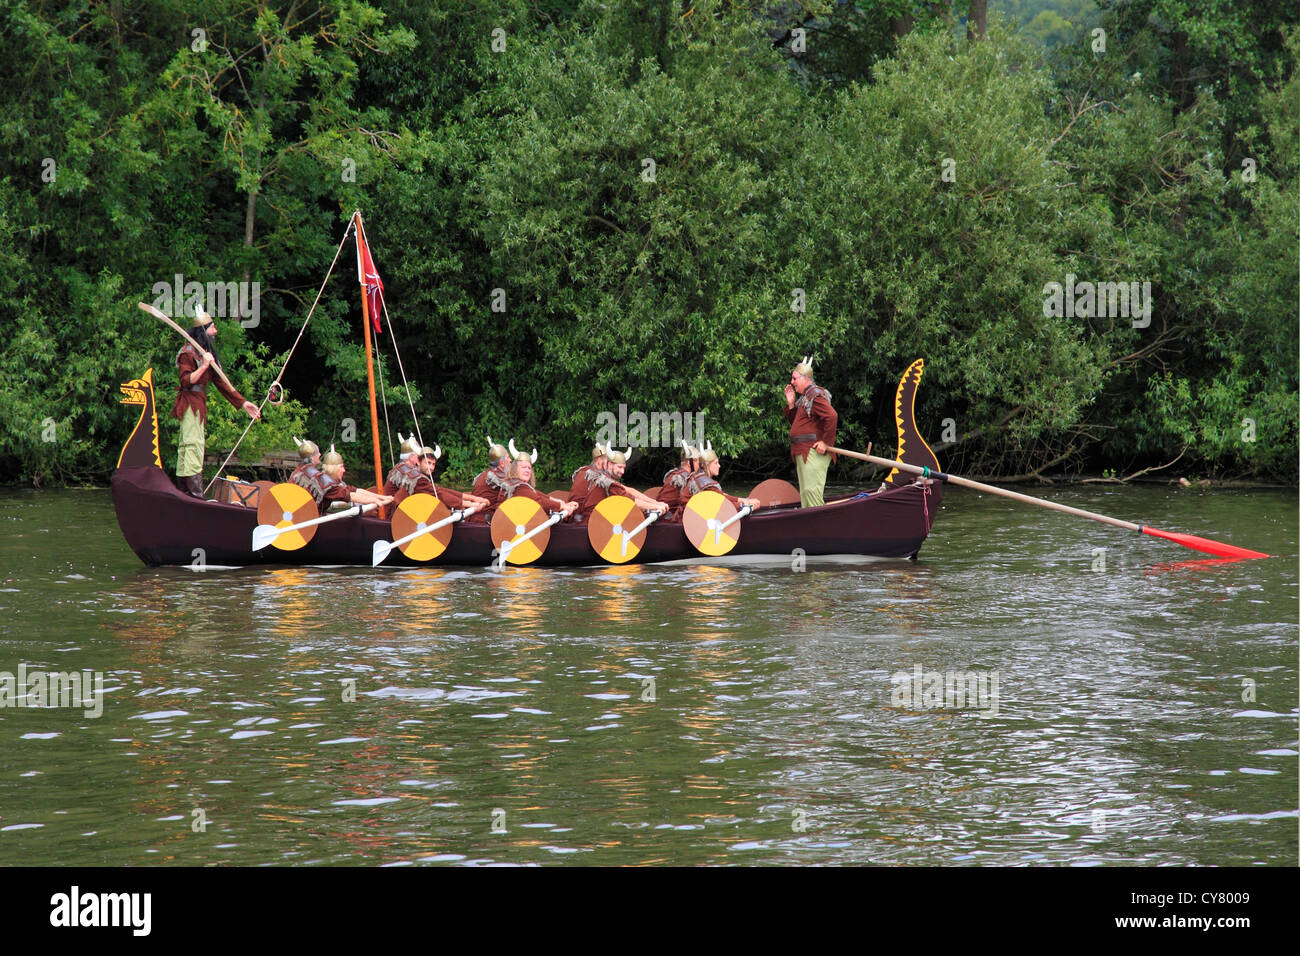 England Buckinghamshire, 'viking' boat on river Thames - Stock Image